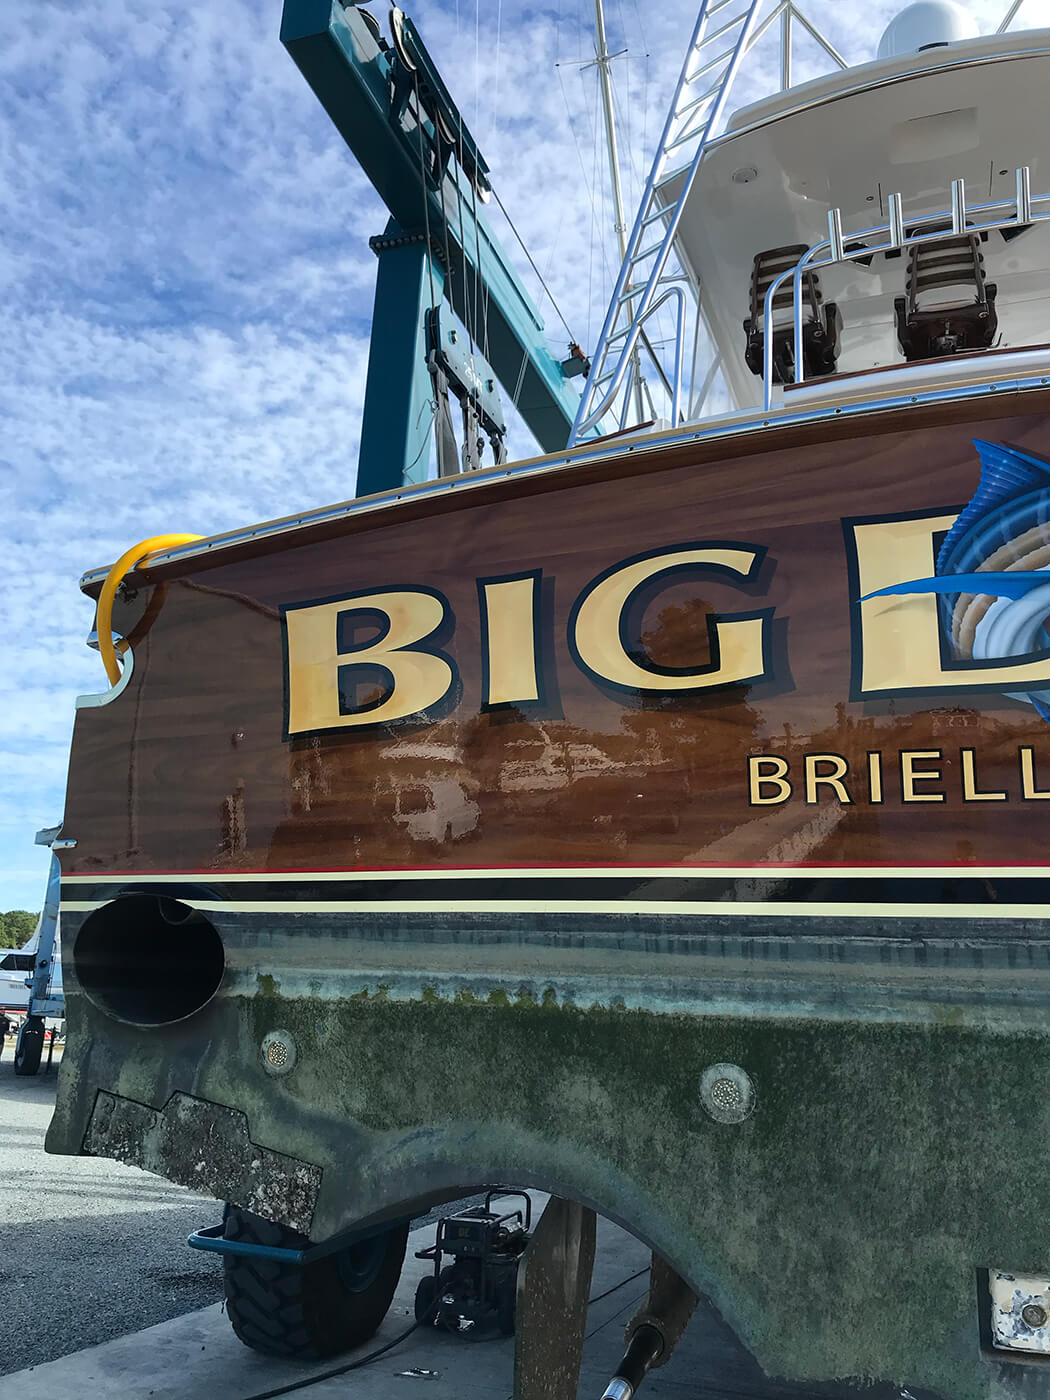 Big Deal Brielle New Jersey Boat Transom spencer yachts wanchese nc